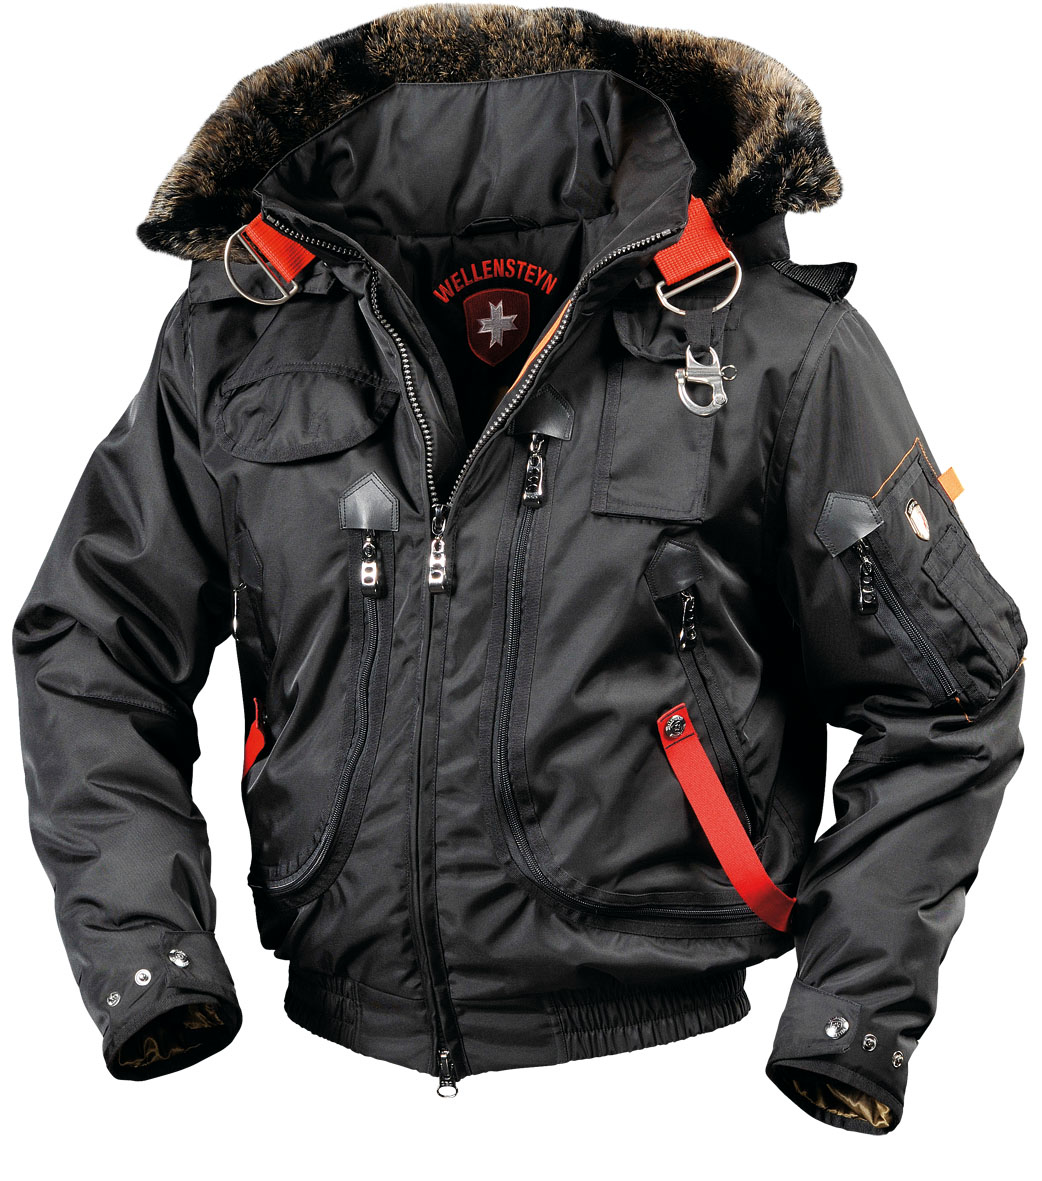 Wellensteyn - Rescue Jacket. Functions    Windproof-Waterproof-Breathable-Taped seams b2323e50ff